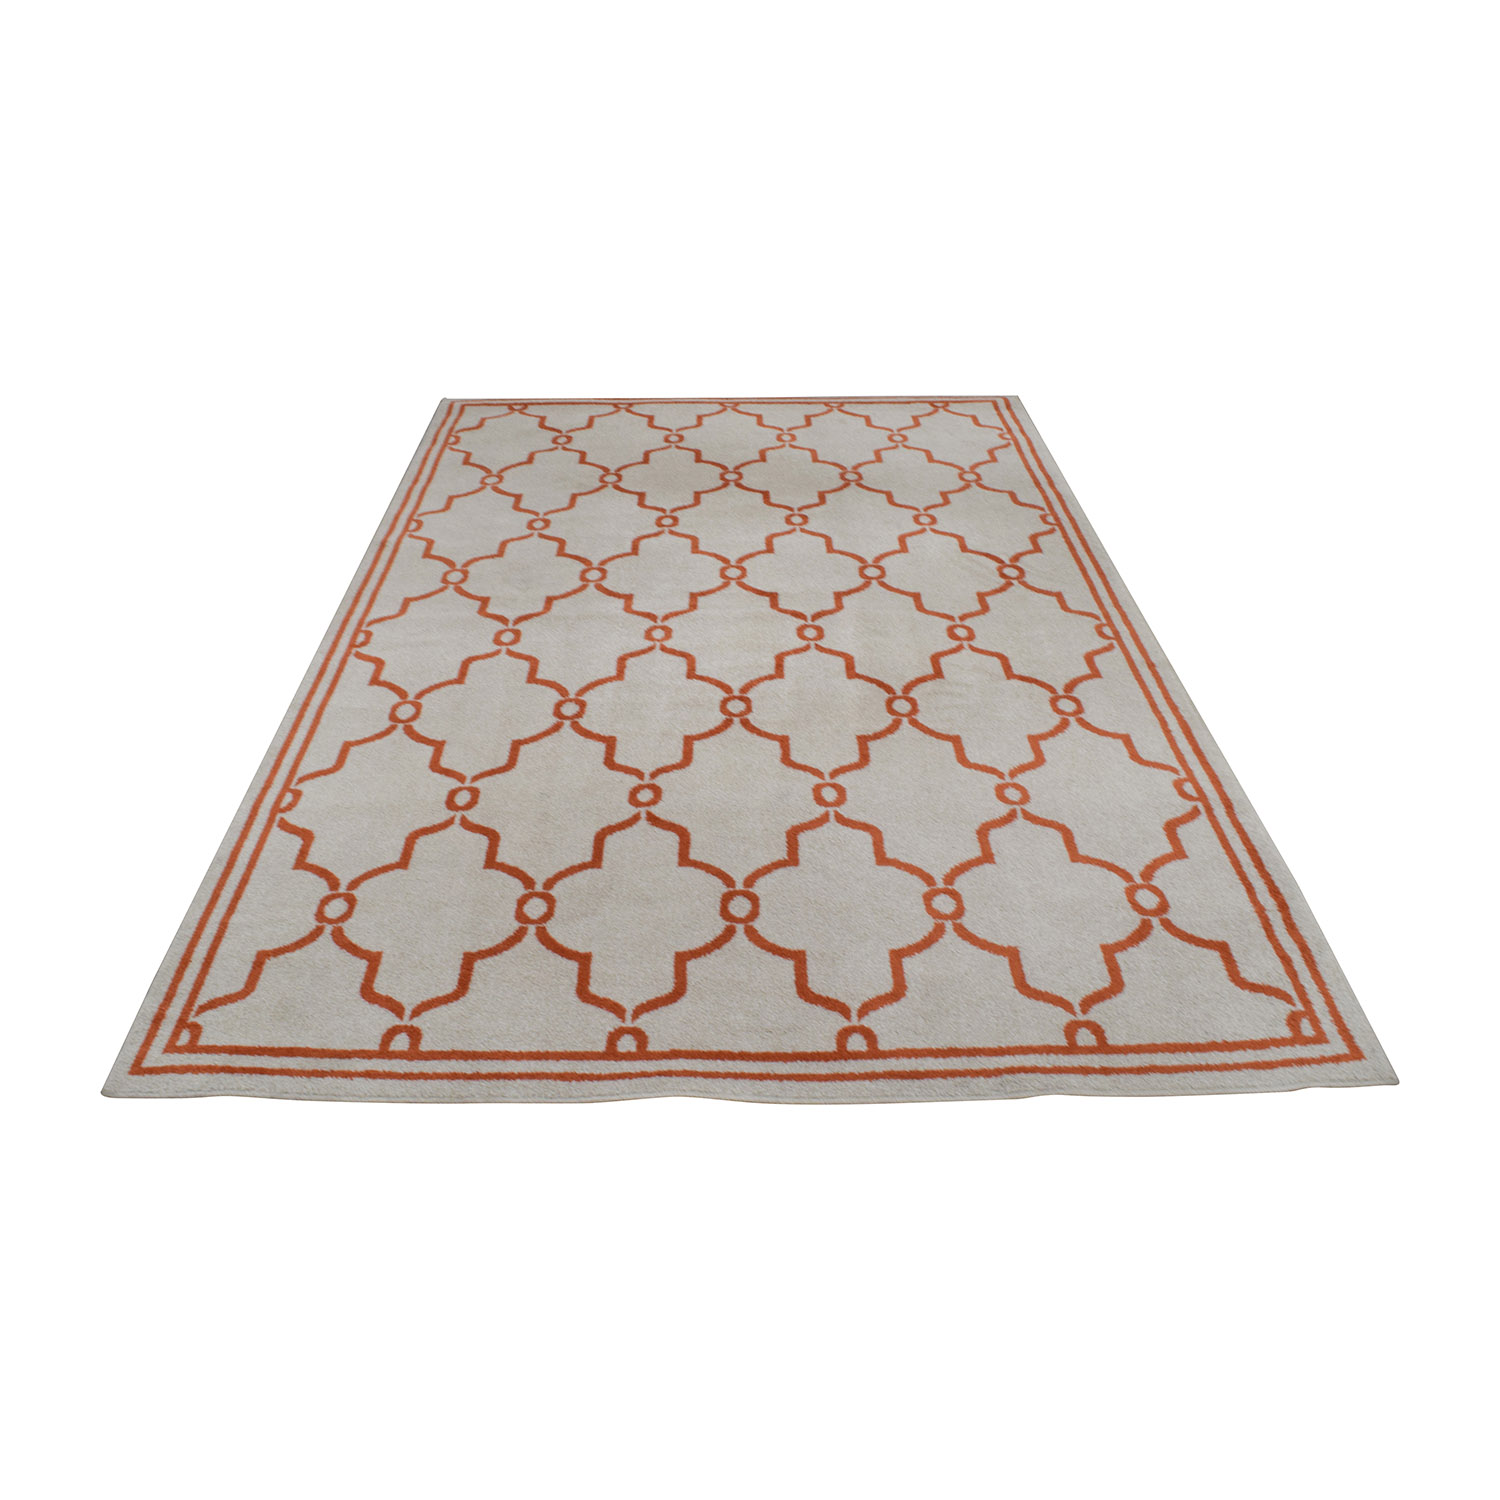 Safavieh Safavieh Amherst Beige and Orange Indoor or Outdoor Rug second hand